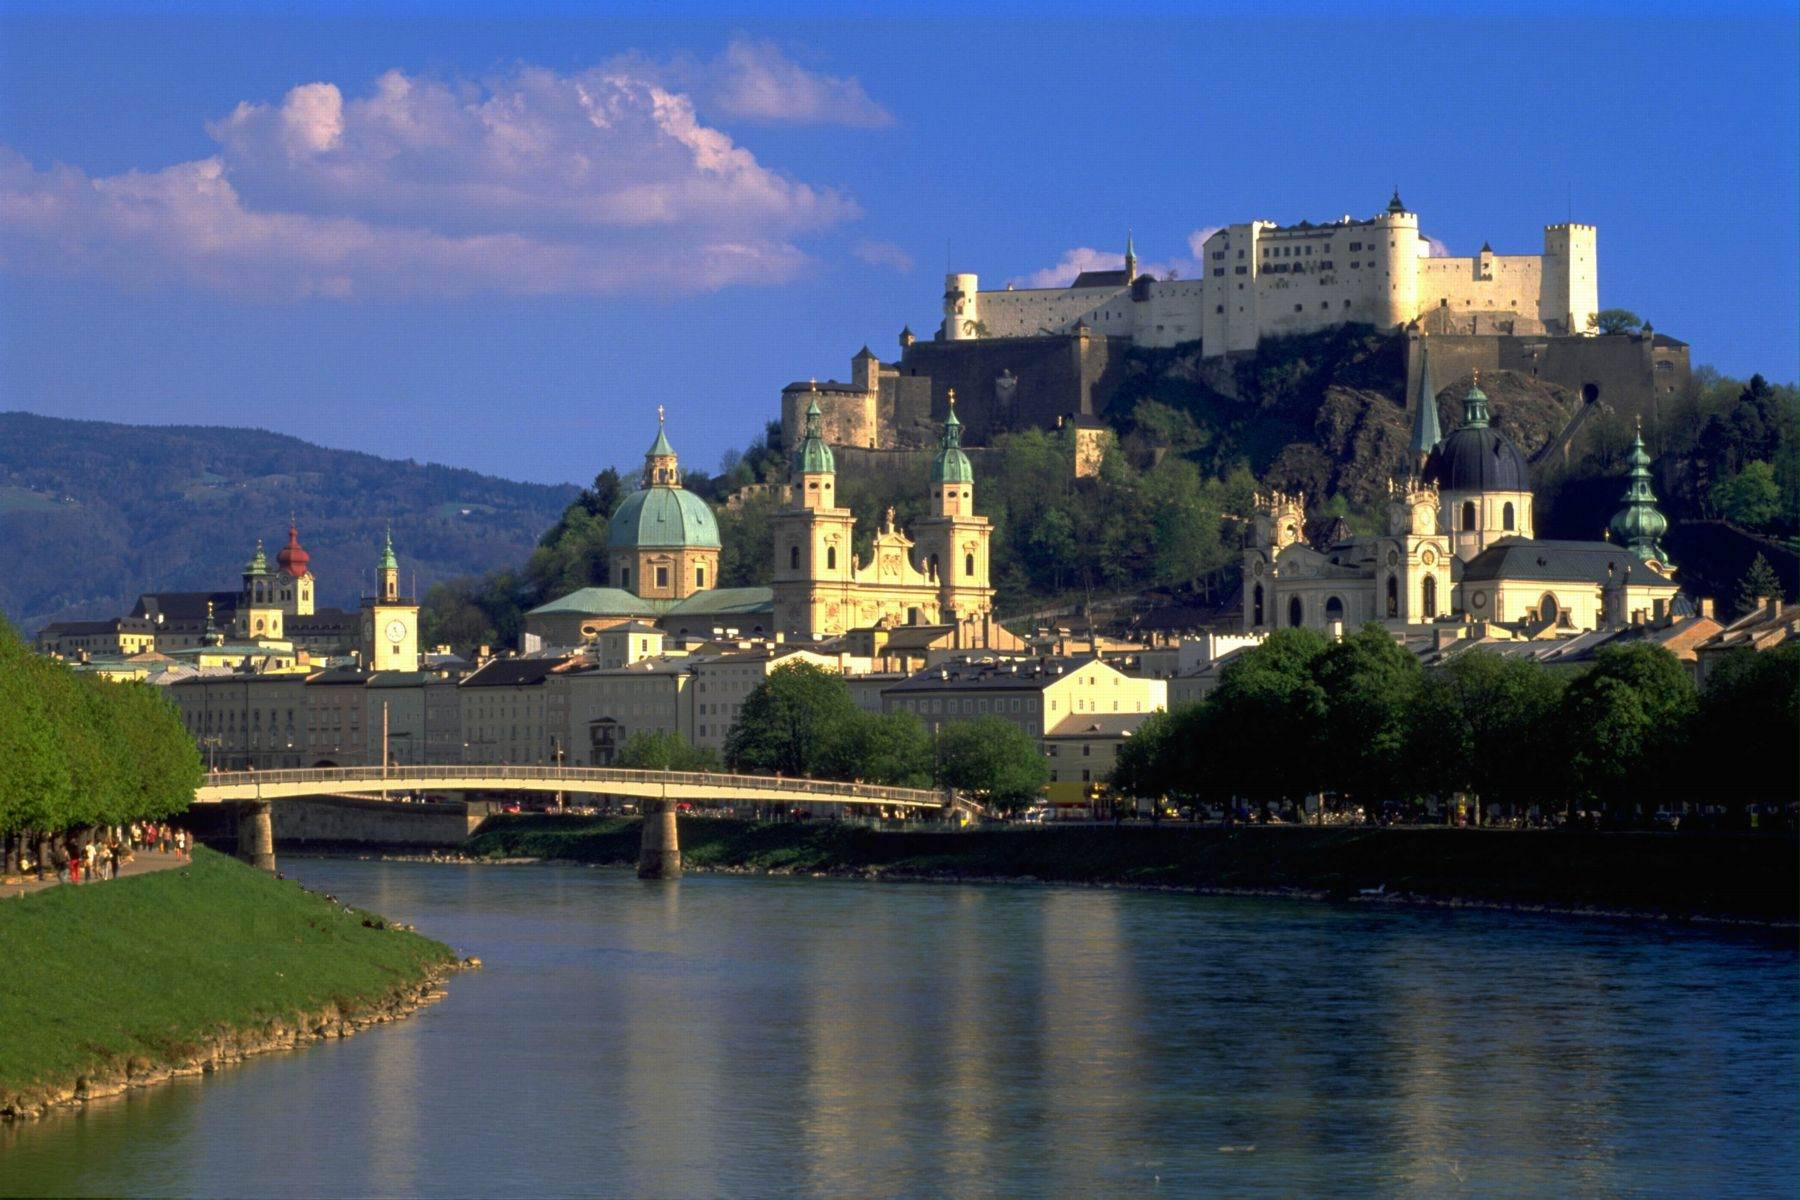 Salzburg Wallpapers and Background Images   stmednet 1800x1200